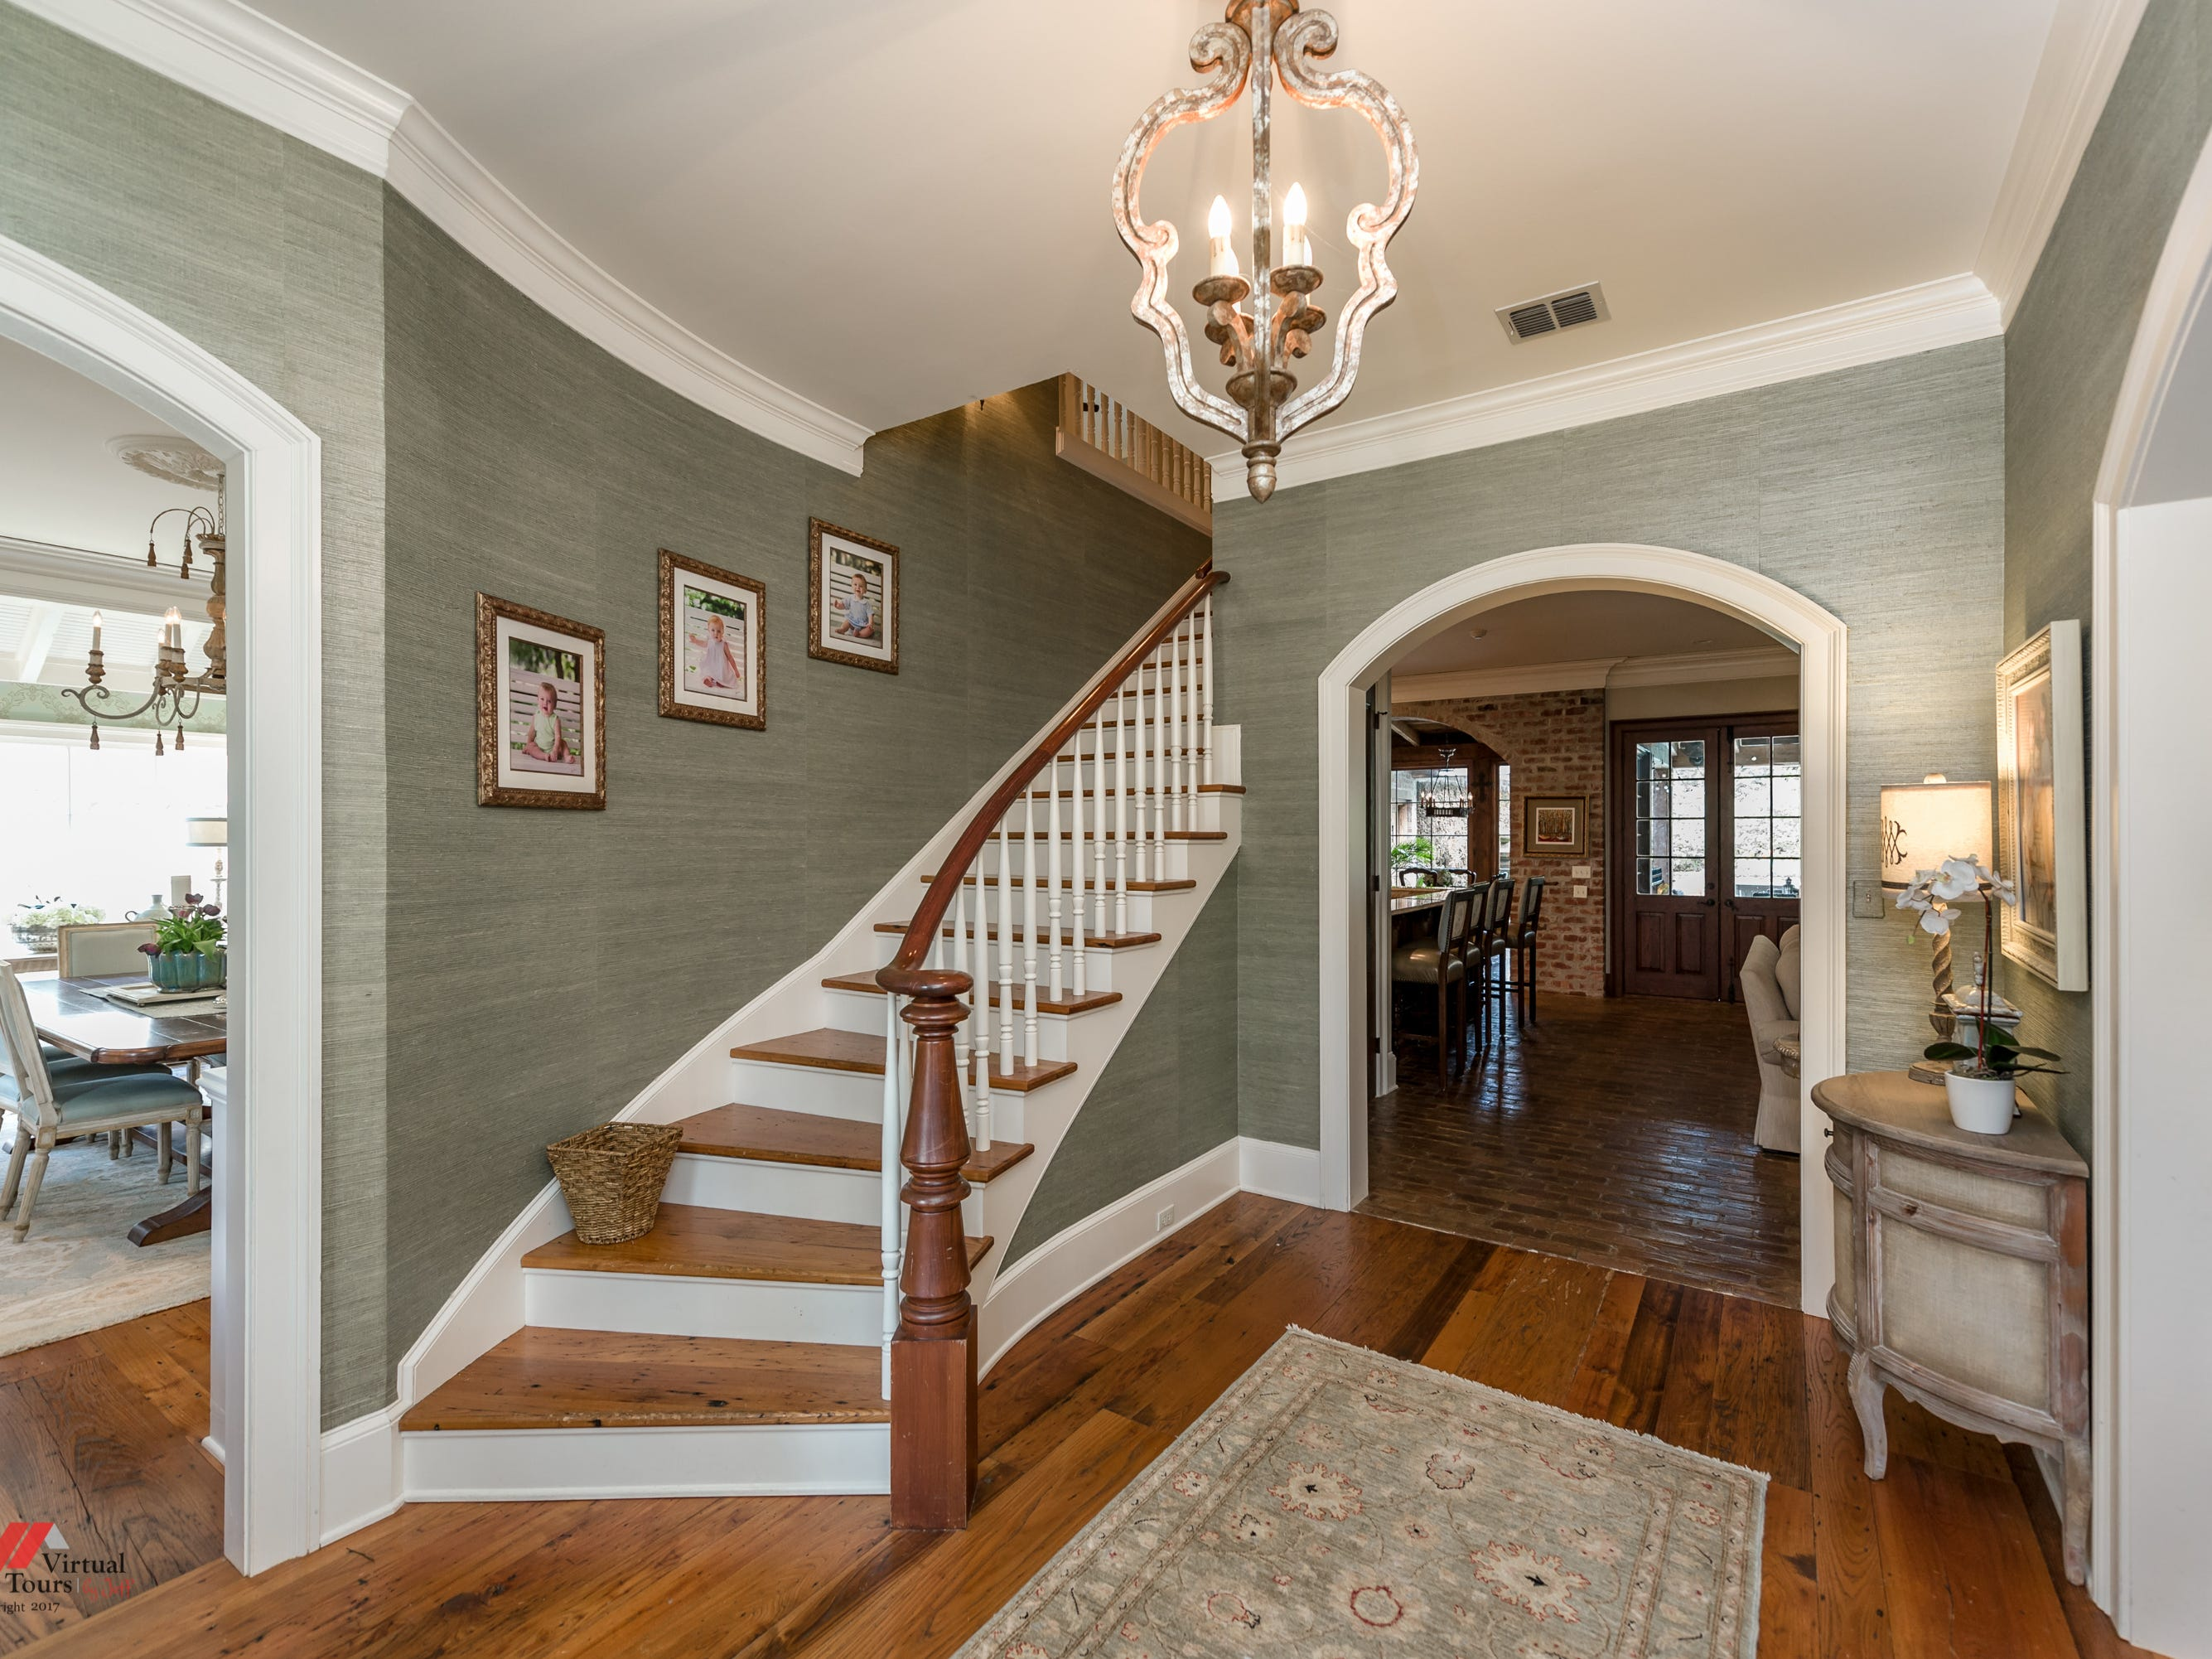 7117 Gilbert Drive,   Shreveport  Price: $1,650,000  Details: 5 bedrooms, 5 bathrooms, 6,466 square feet  Featuring: Featured on Parade of Homes in Spring Lake, nine antique French door sets salvaged from a New Orleans hotel, resort-like outdoor living area.   Contact: Lisa Hargrove, 393-1003